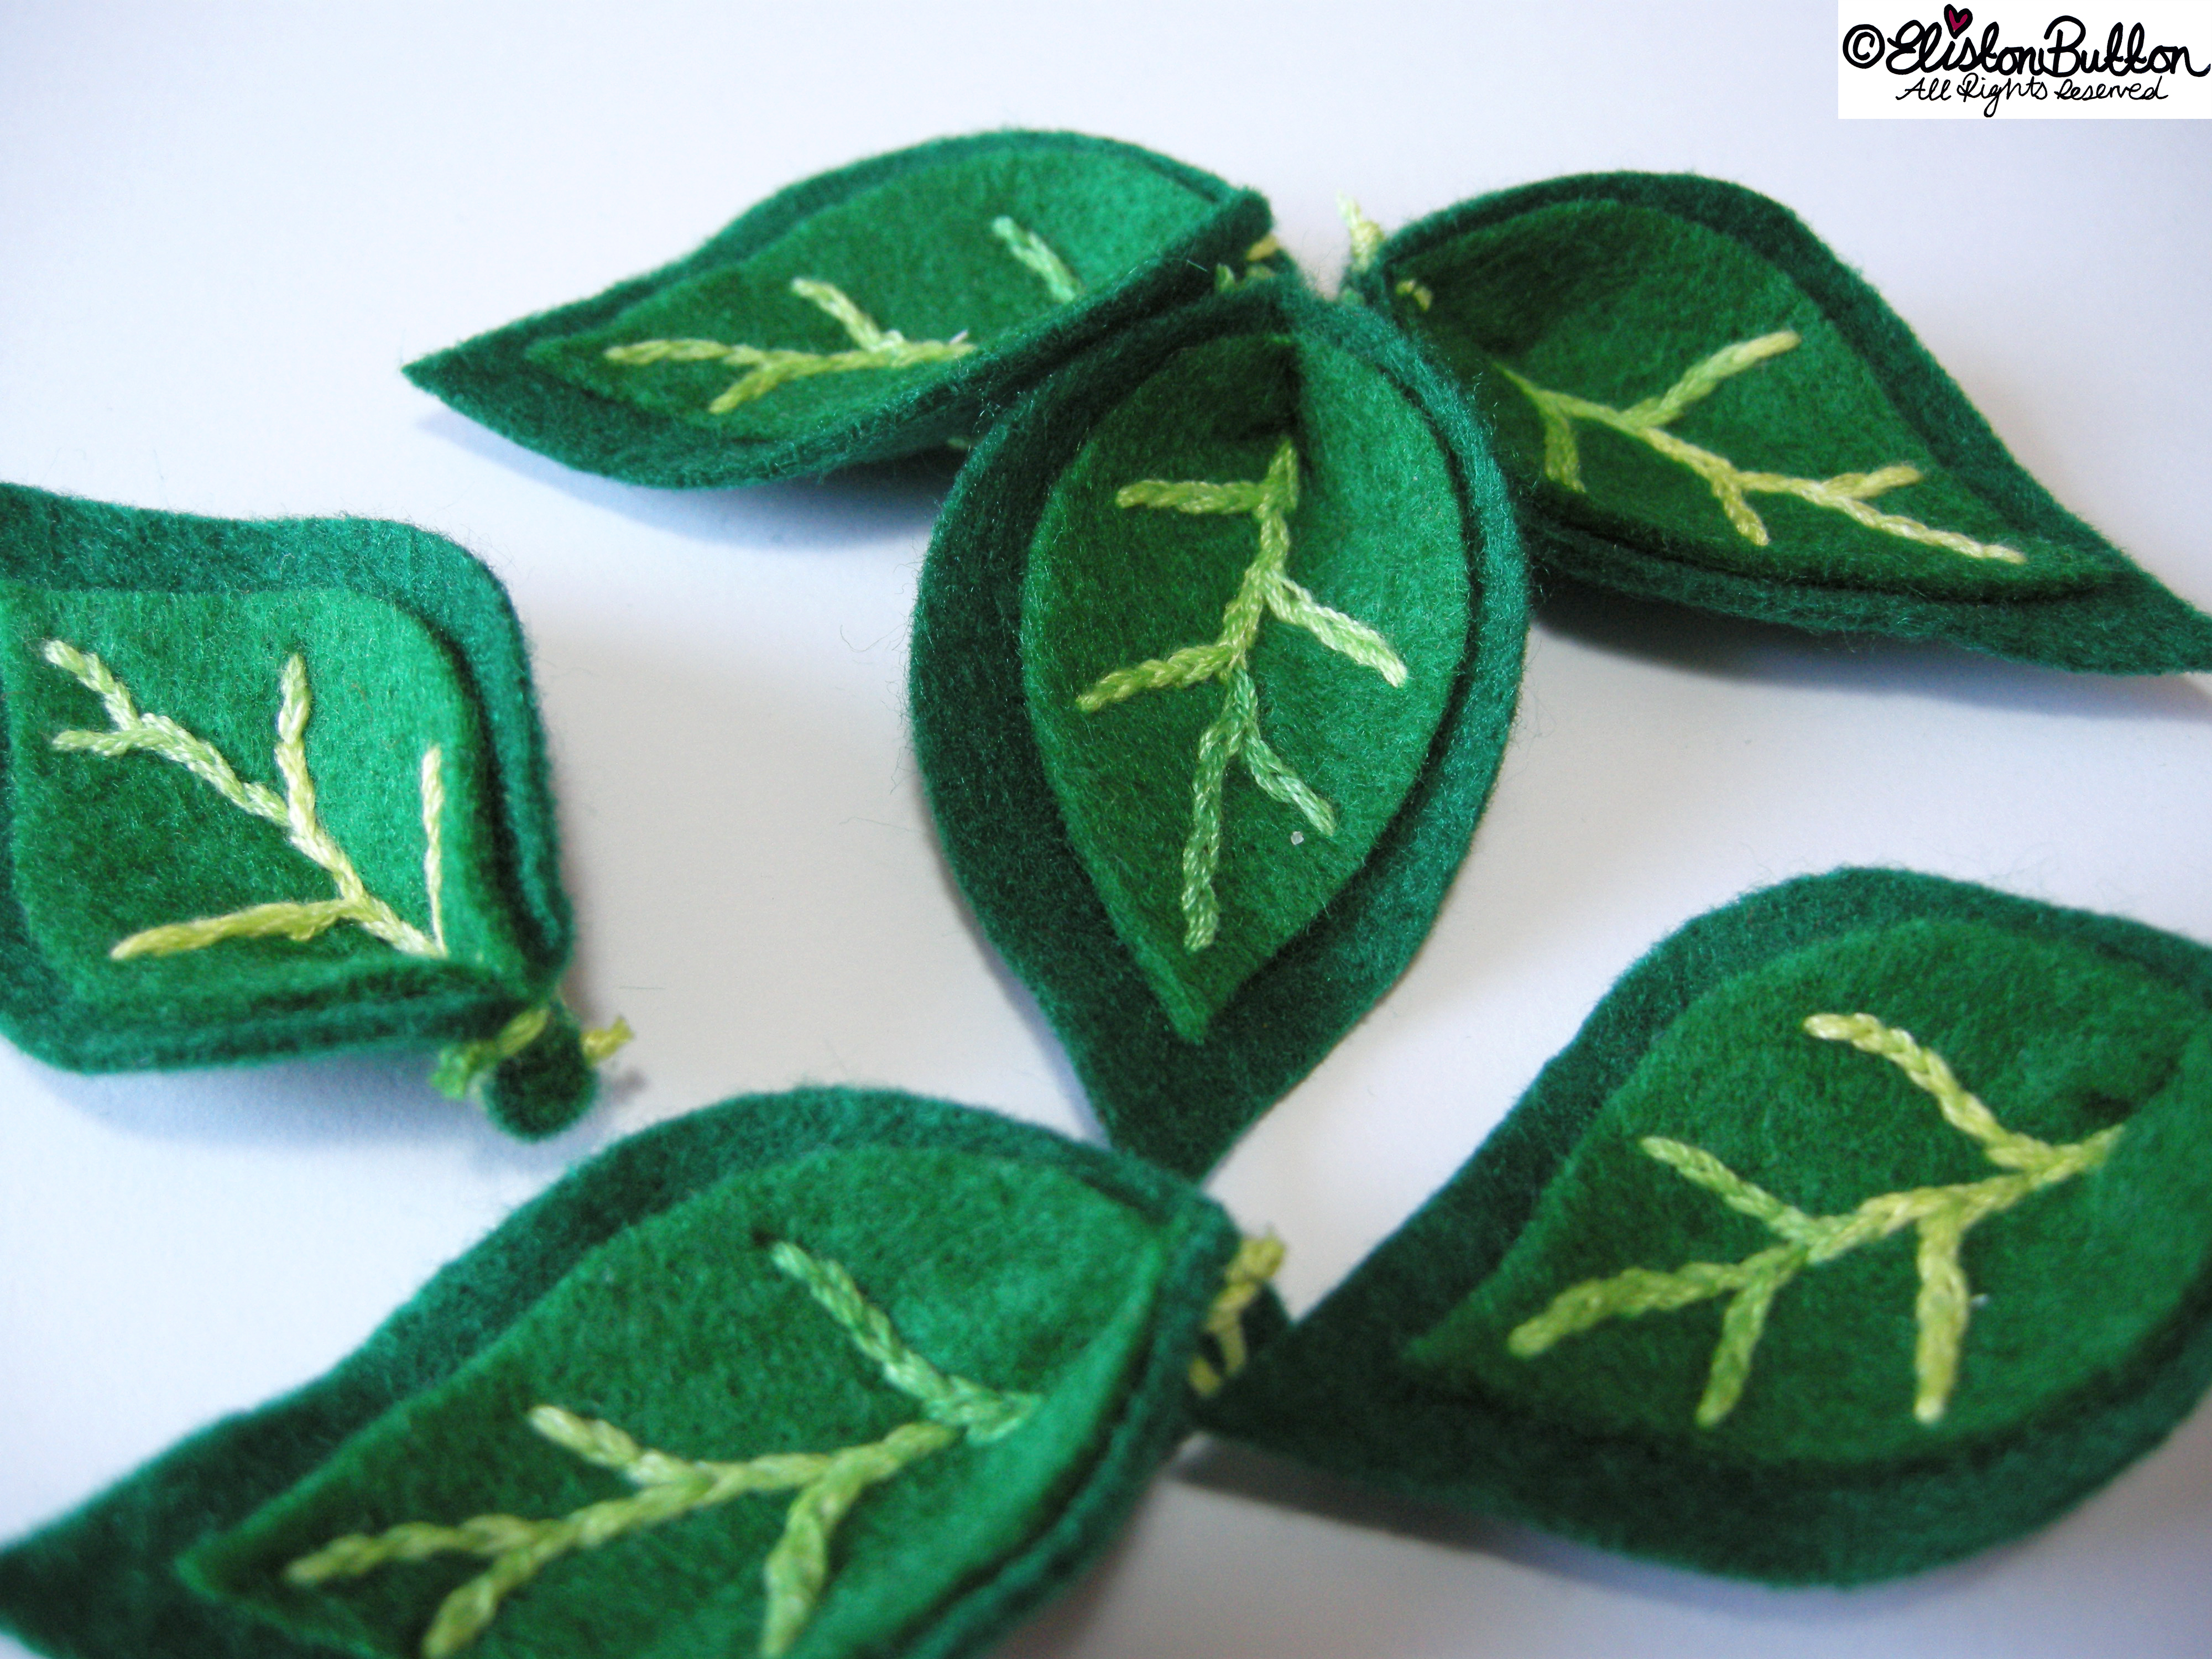 Embroidered Green Felt Leaves - 27 Before 27 - Leafy Greens at www.elistonbutton.com - Eliston Button - That Crafty Kid – Art, Design, Craft & Adventure.